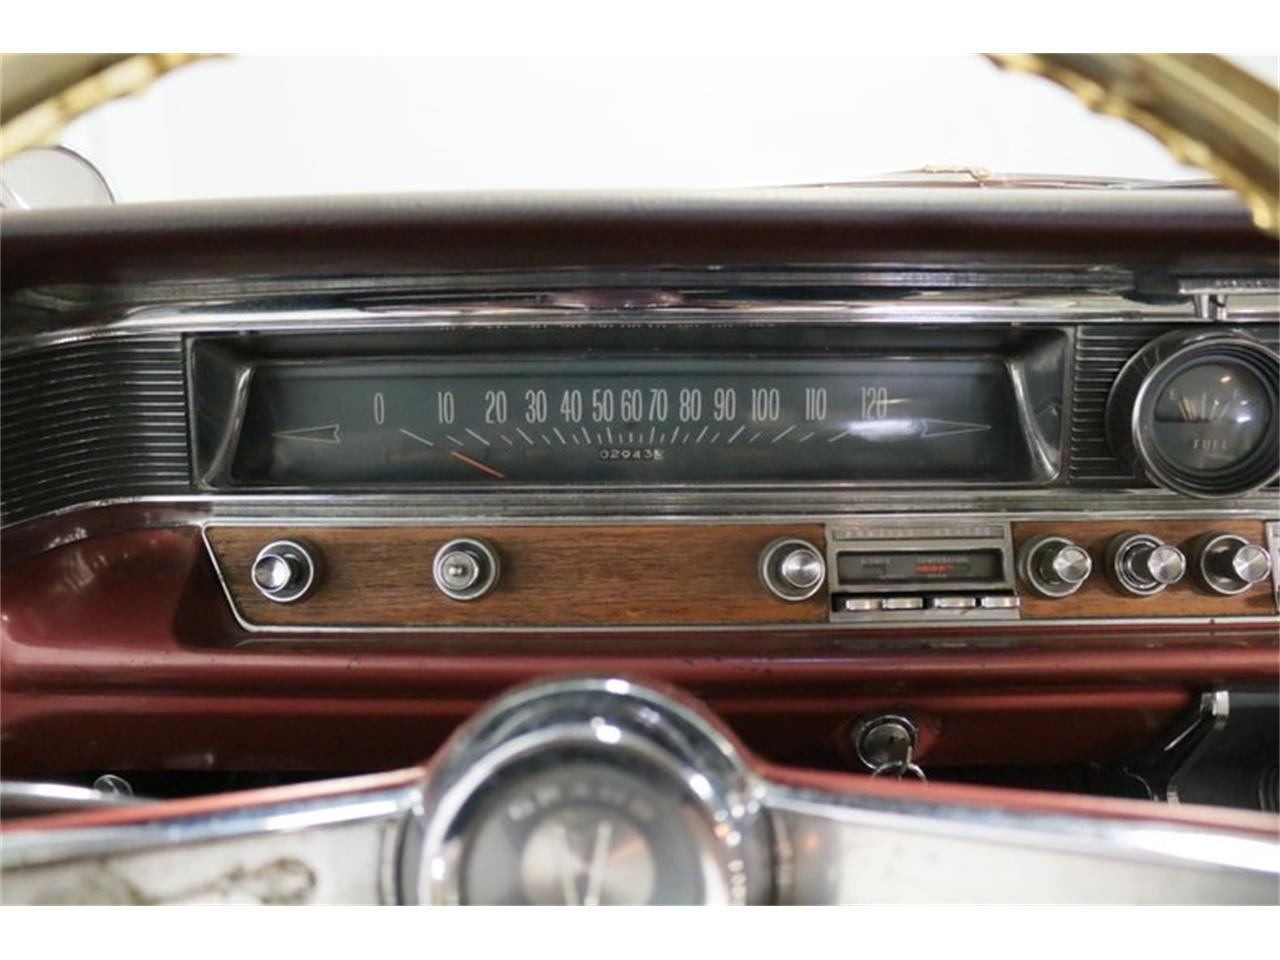 Large Picture of 1964 Pontiac Grand Prix - $16,995.00 Offered by Streetside Classics - Dallas / Fort Worth - QA9B